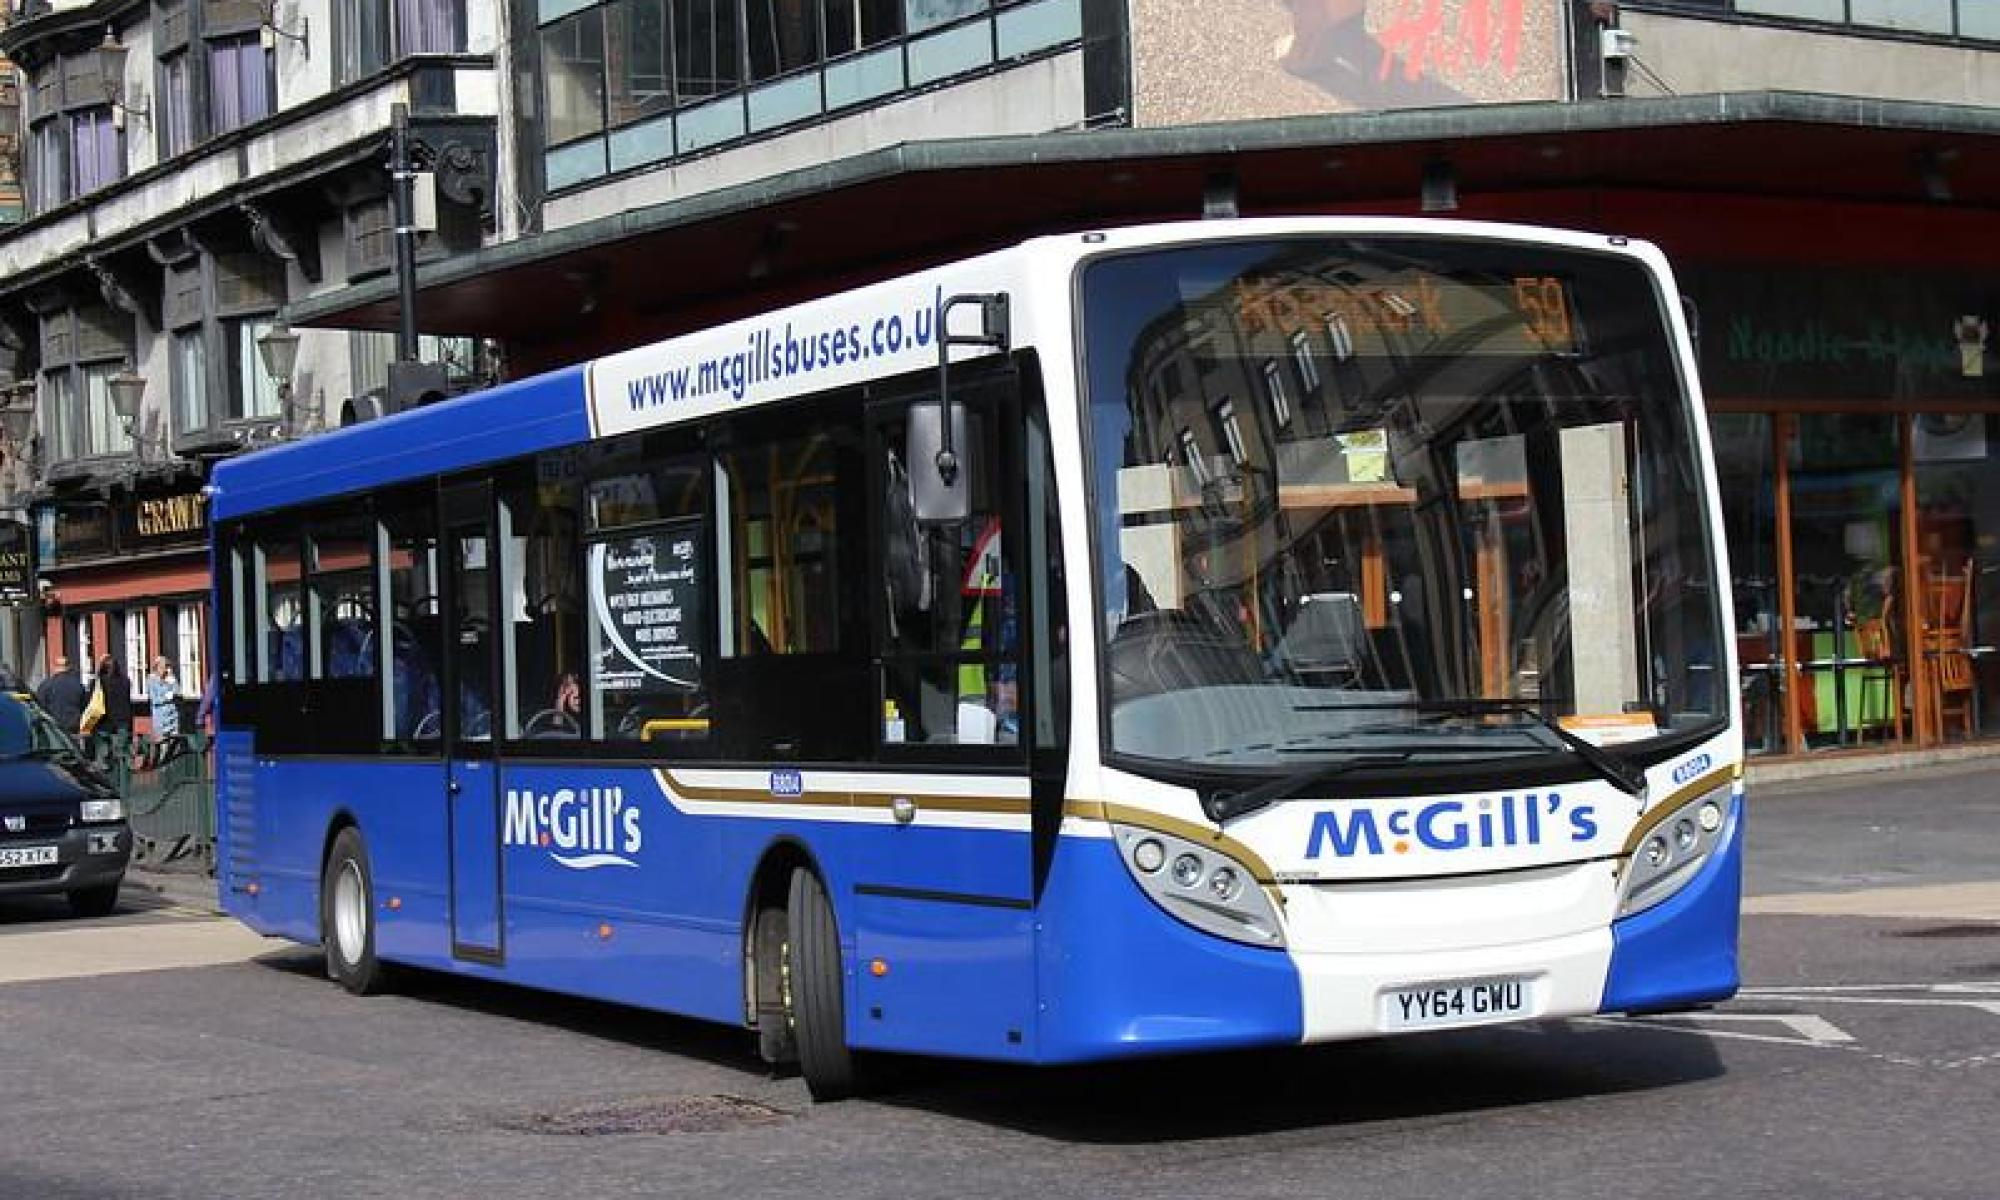 Bus driver who harassed Glasgow cyclists sent for retraining